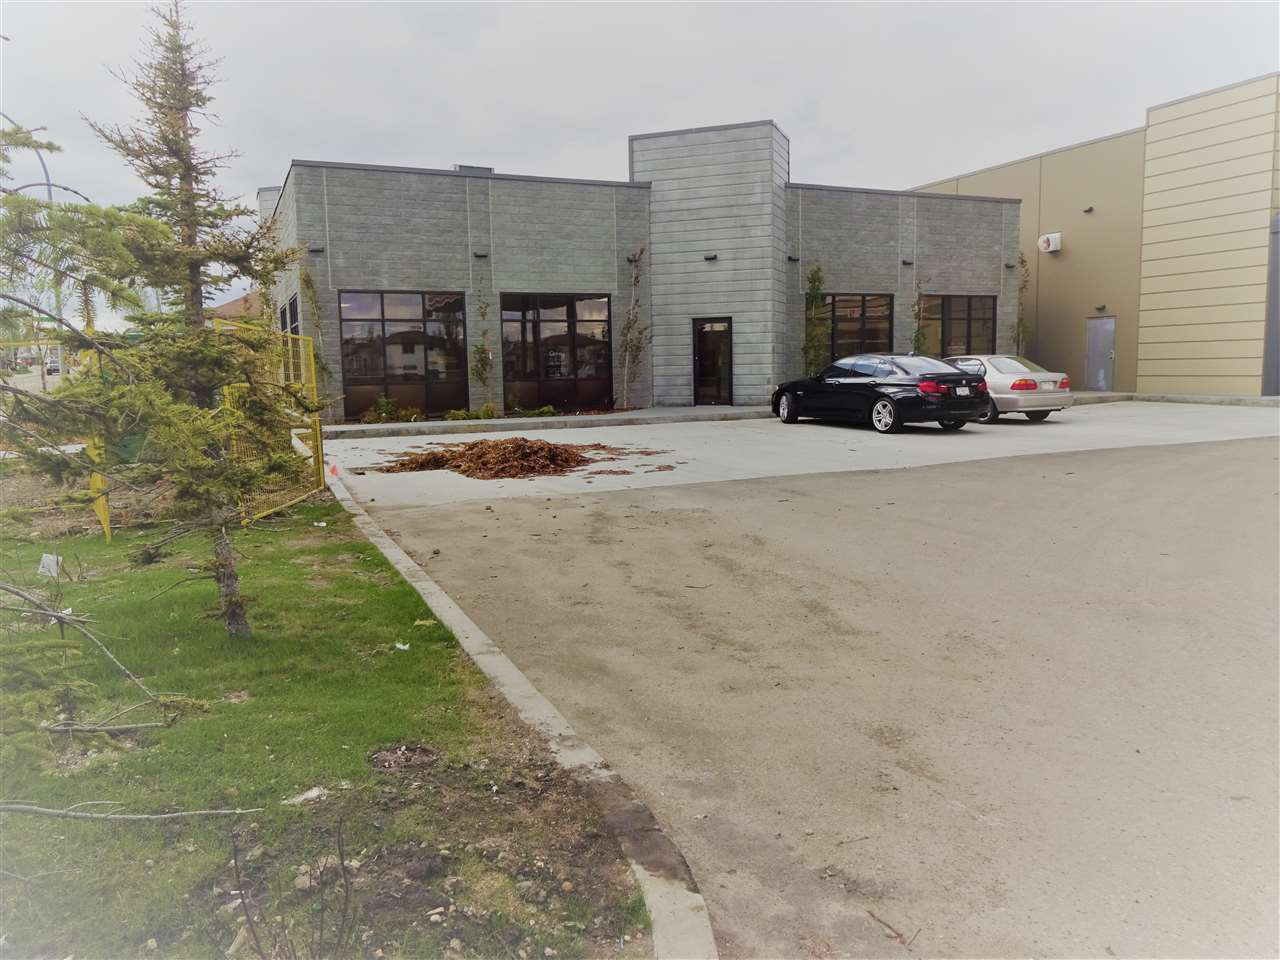 Brand new Medical Clinic and Pharmacy opportunity. Fully constructed and ready to go. Includes 8 complete Exam rooms, 1 treatment room, 3 large offices, pharmacy complete with compounding area and nice size retail area. Landlord providing excellent incentives on this site.